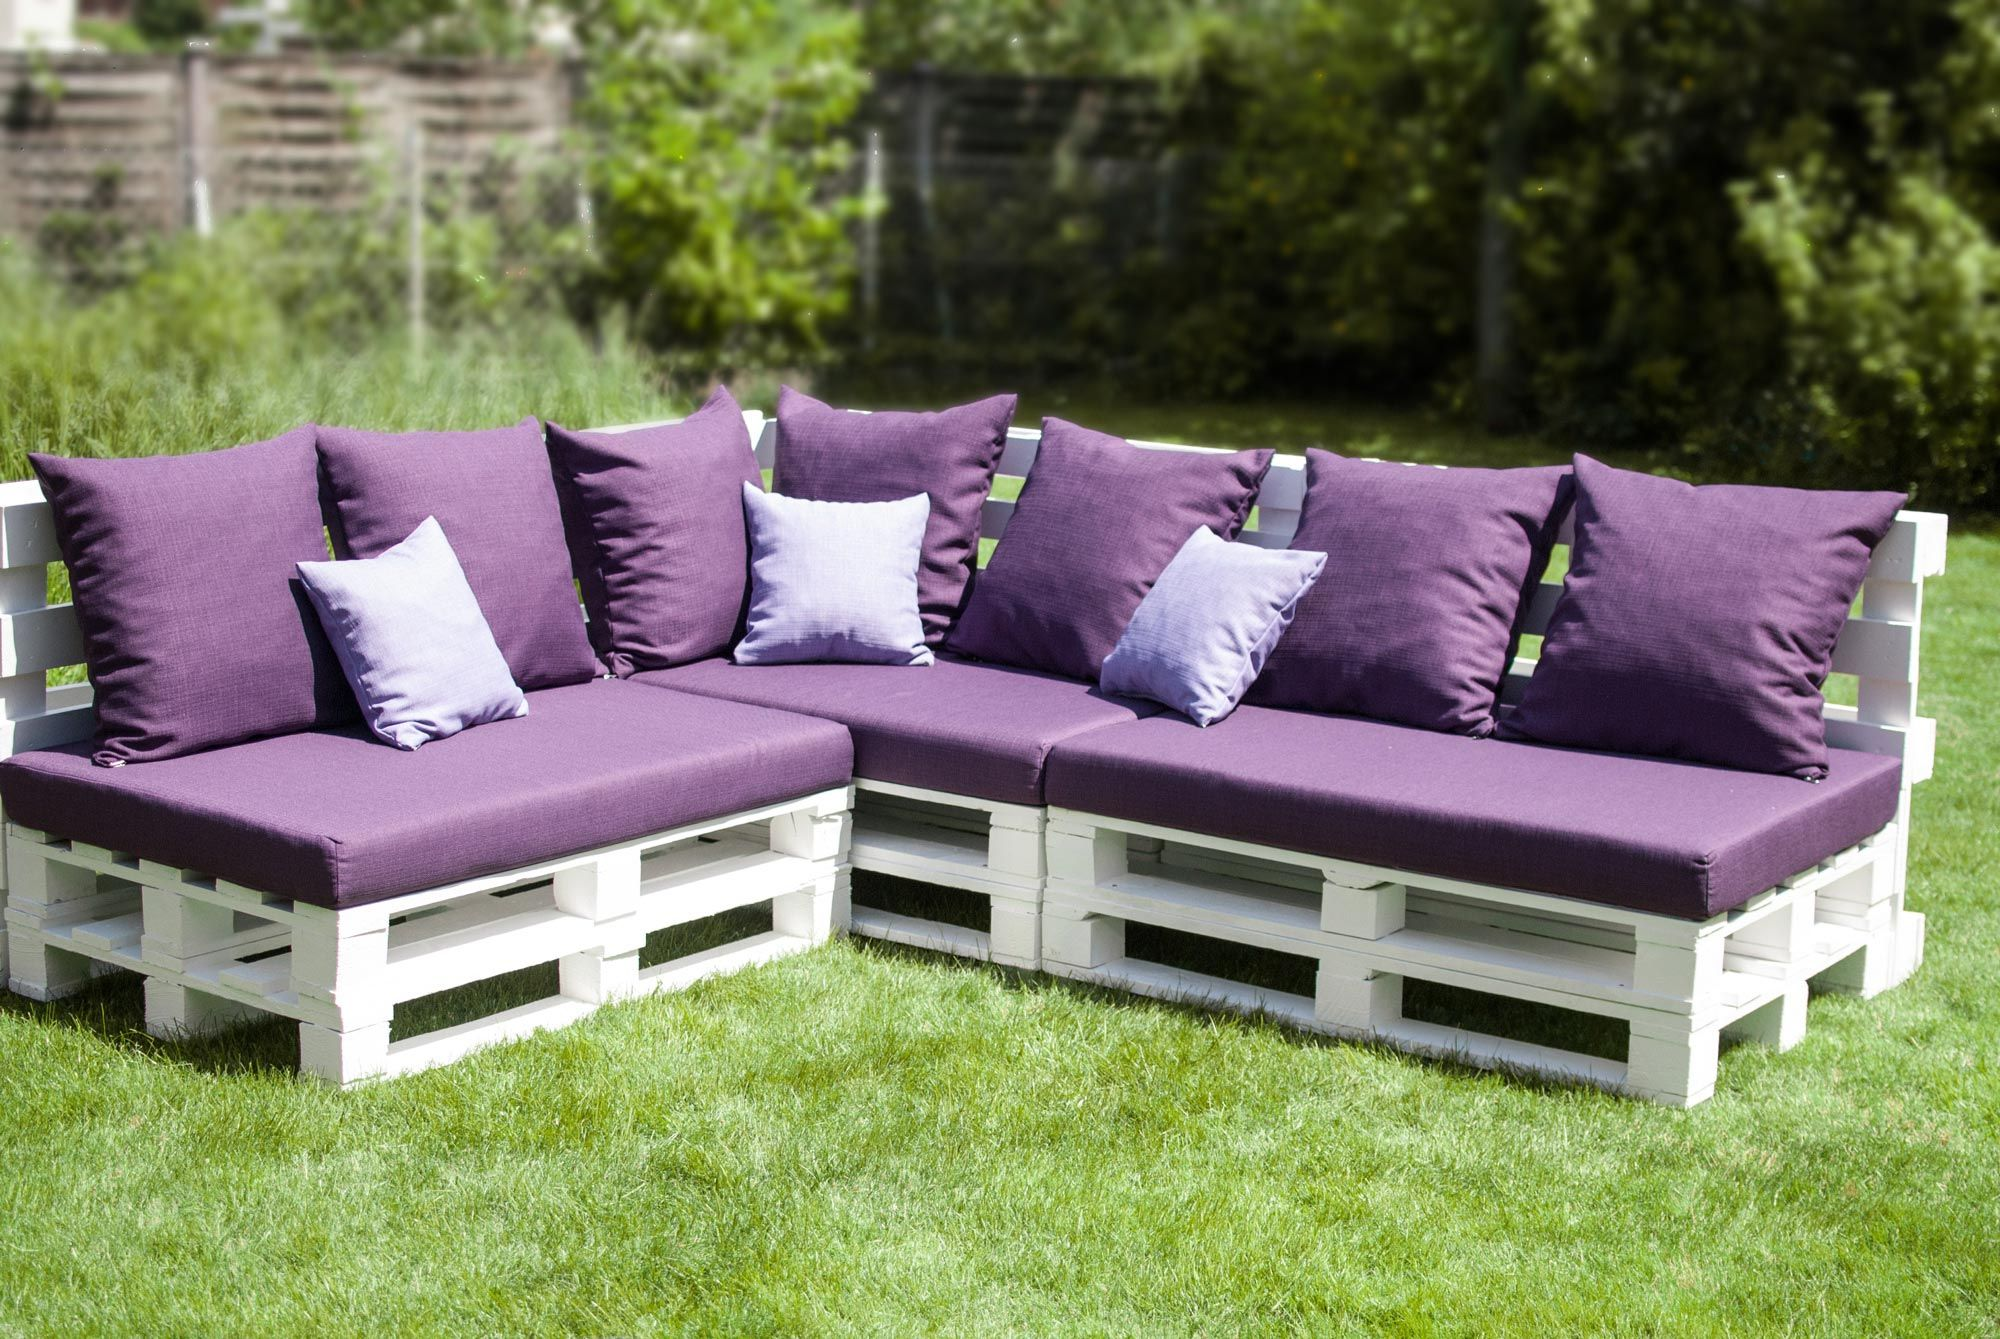 DIY Outdoor Couch aus Euro Paletten http://blog.wohn guide.de/diy